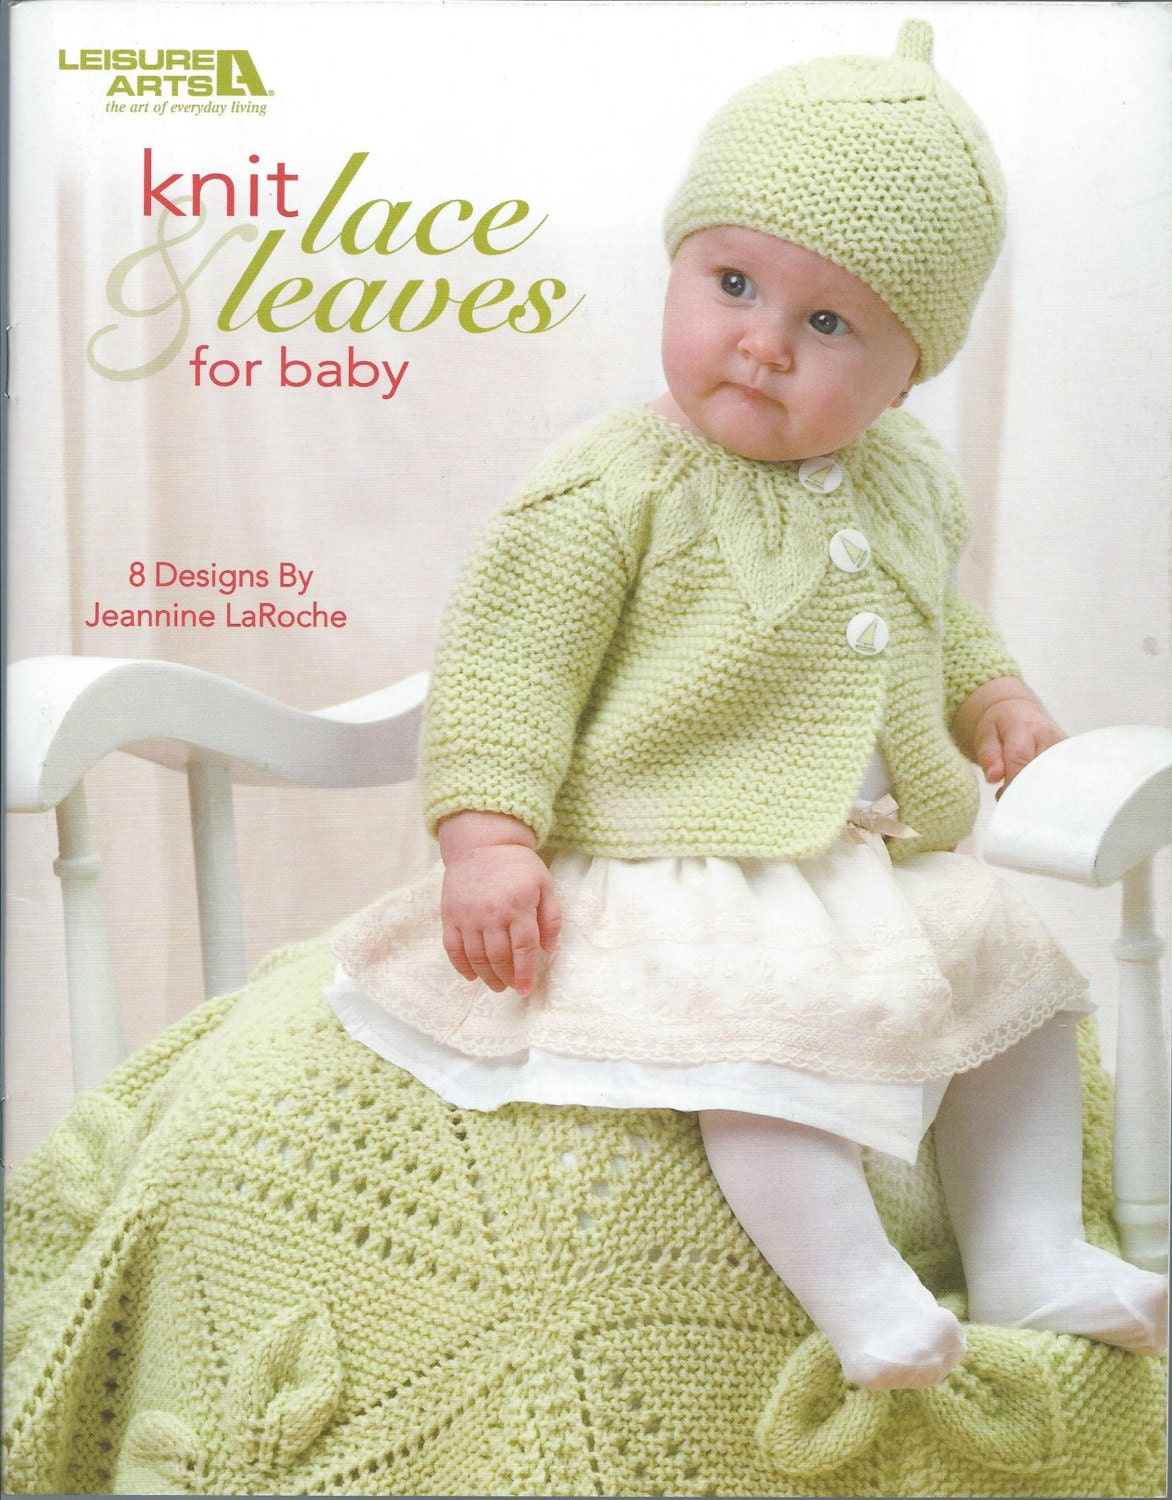 Knitting Books For Babies : Items similar to knit lace leaves for baby knitting book